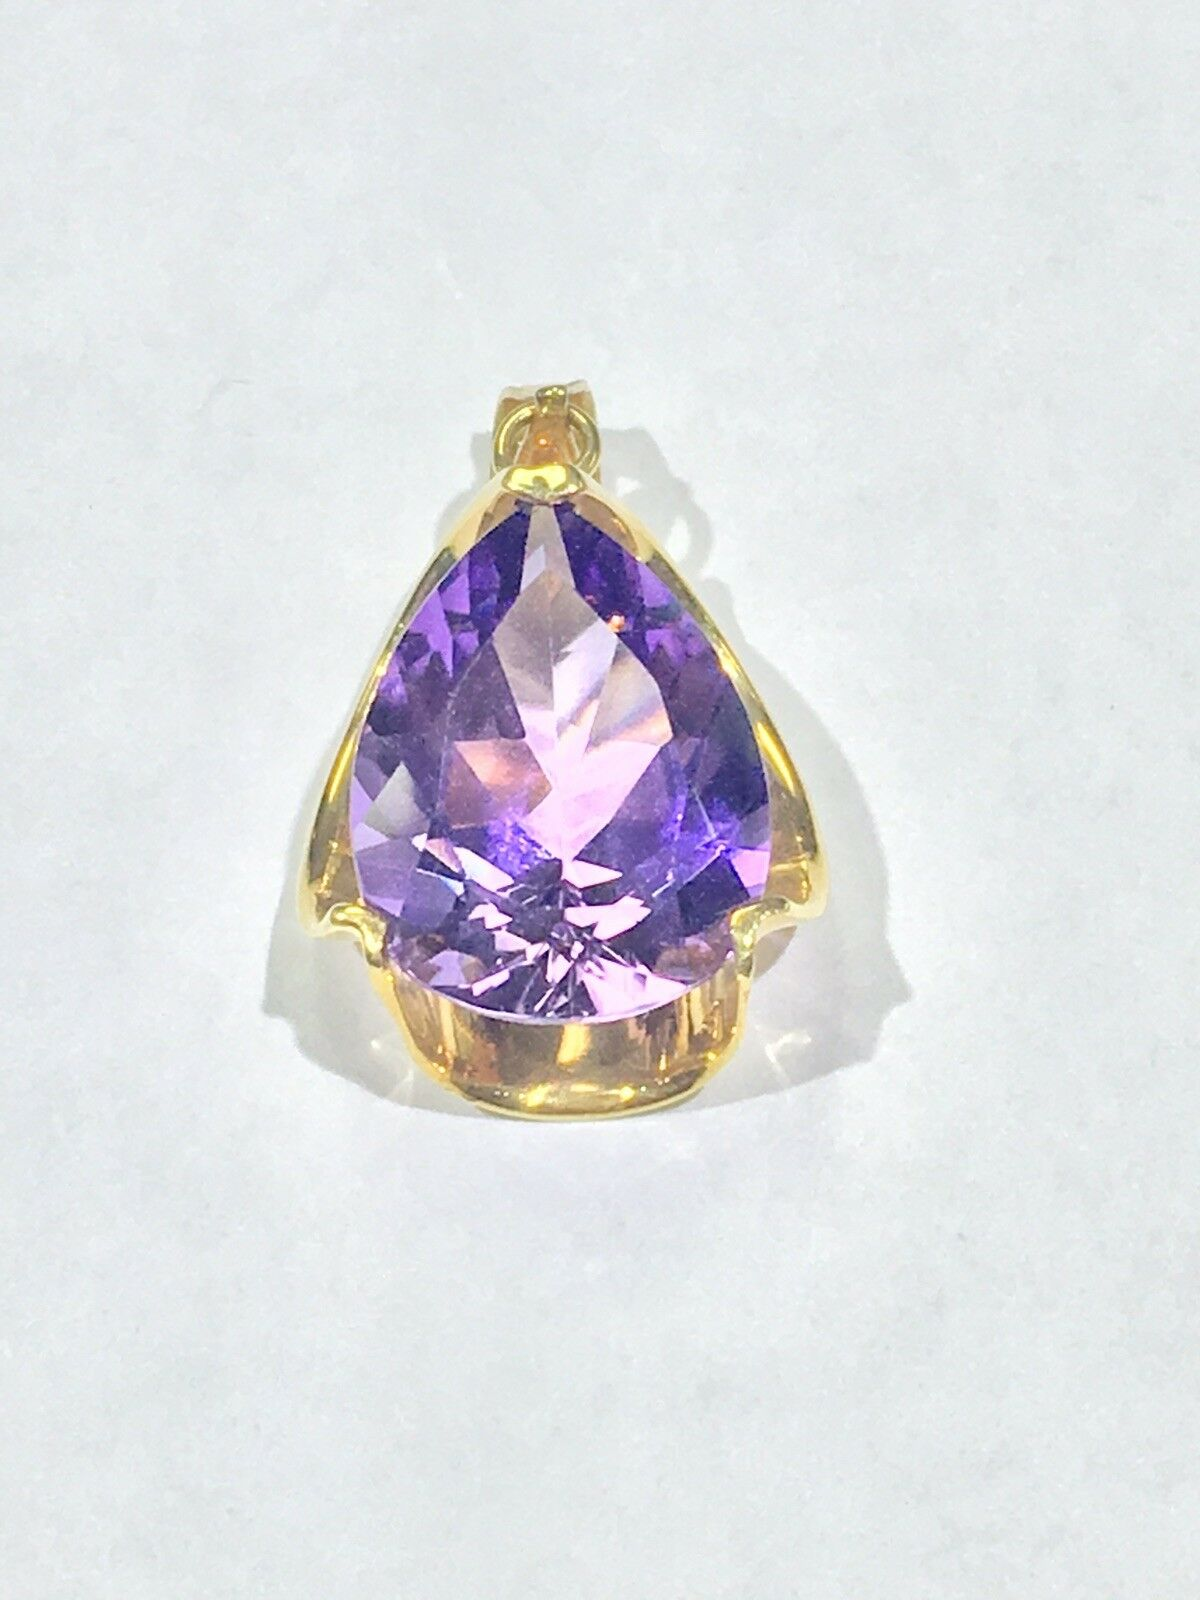 14k gold Pendant With Pear Shaped Amethyst